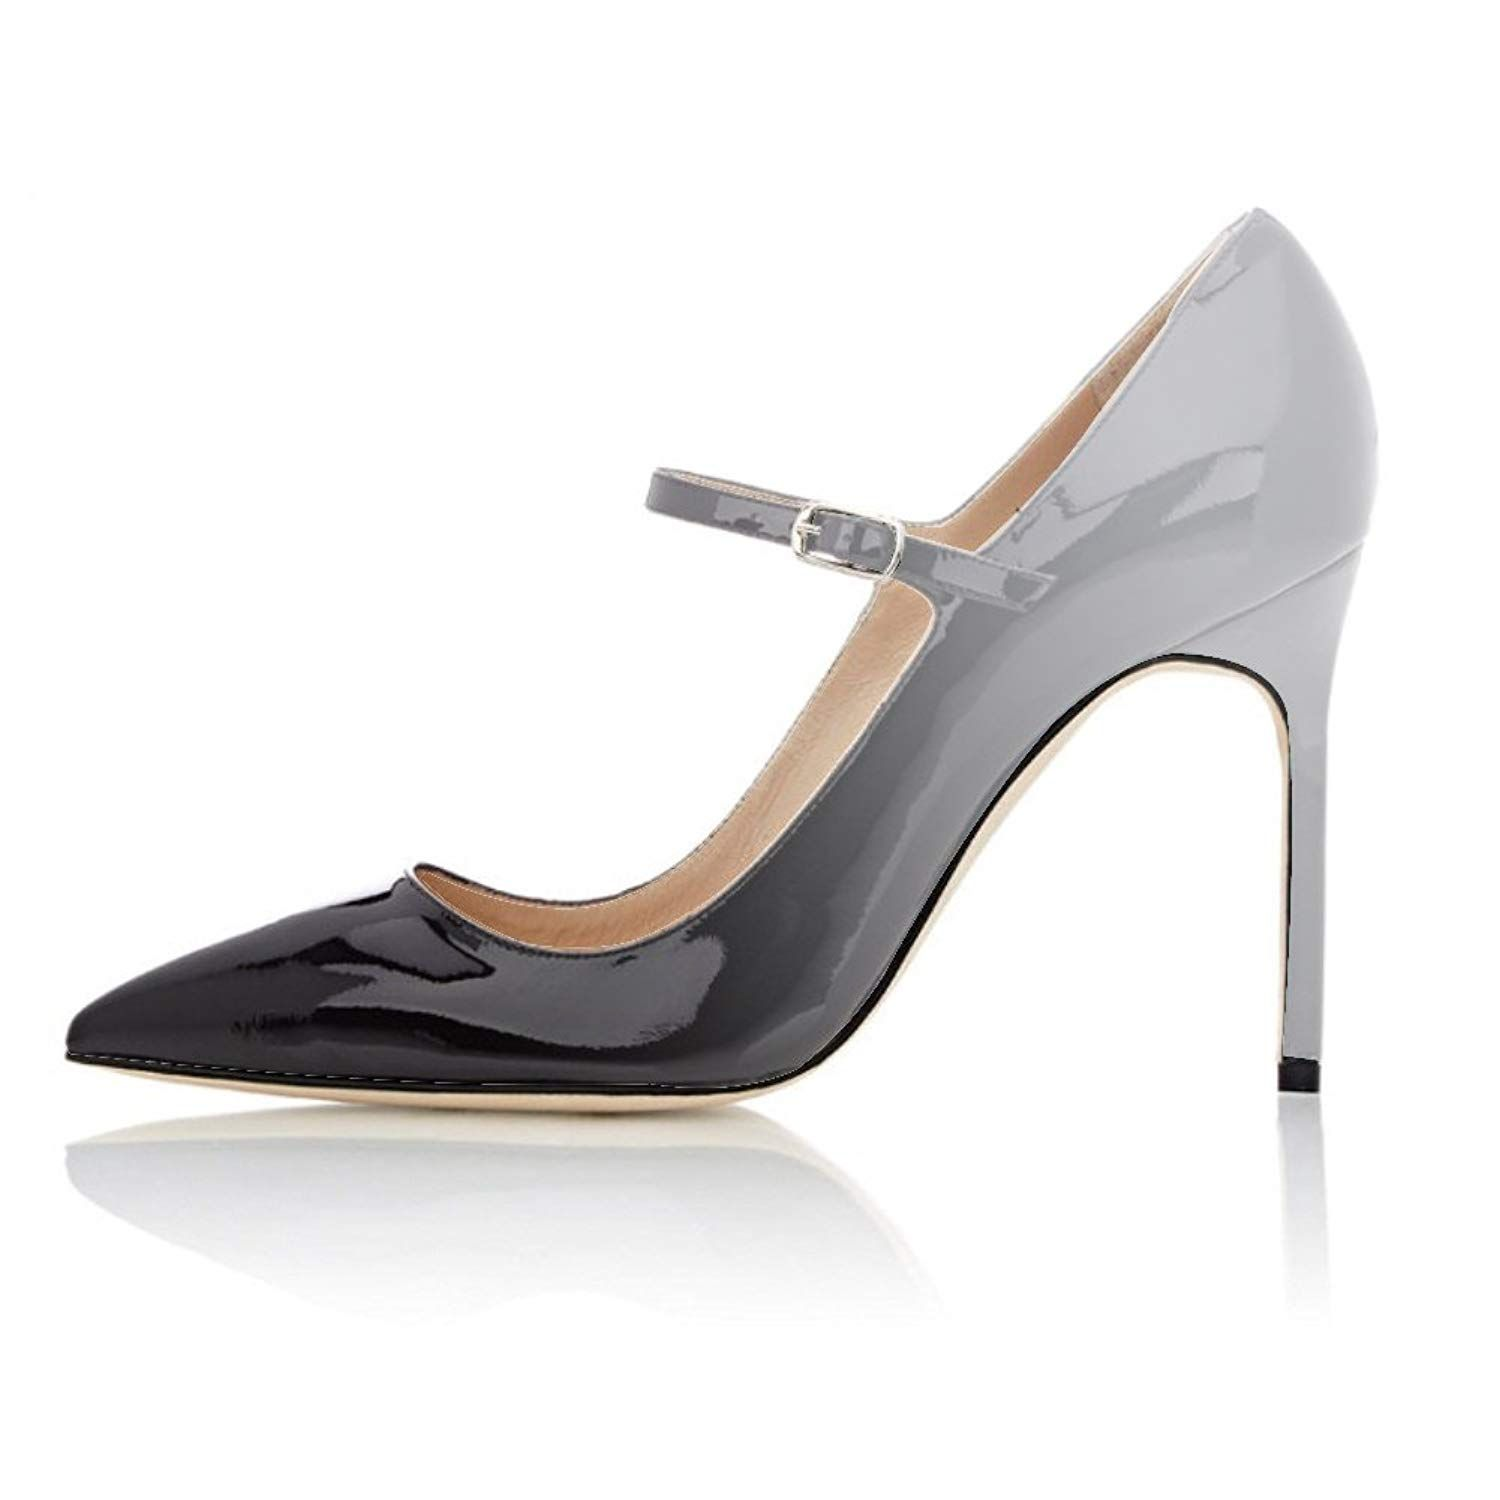 e849656f98f Eldof Women s 100mm High Heel Pointed Toe Mary Jane Pumps Ankle Strap  Buckle Closure Shoes.